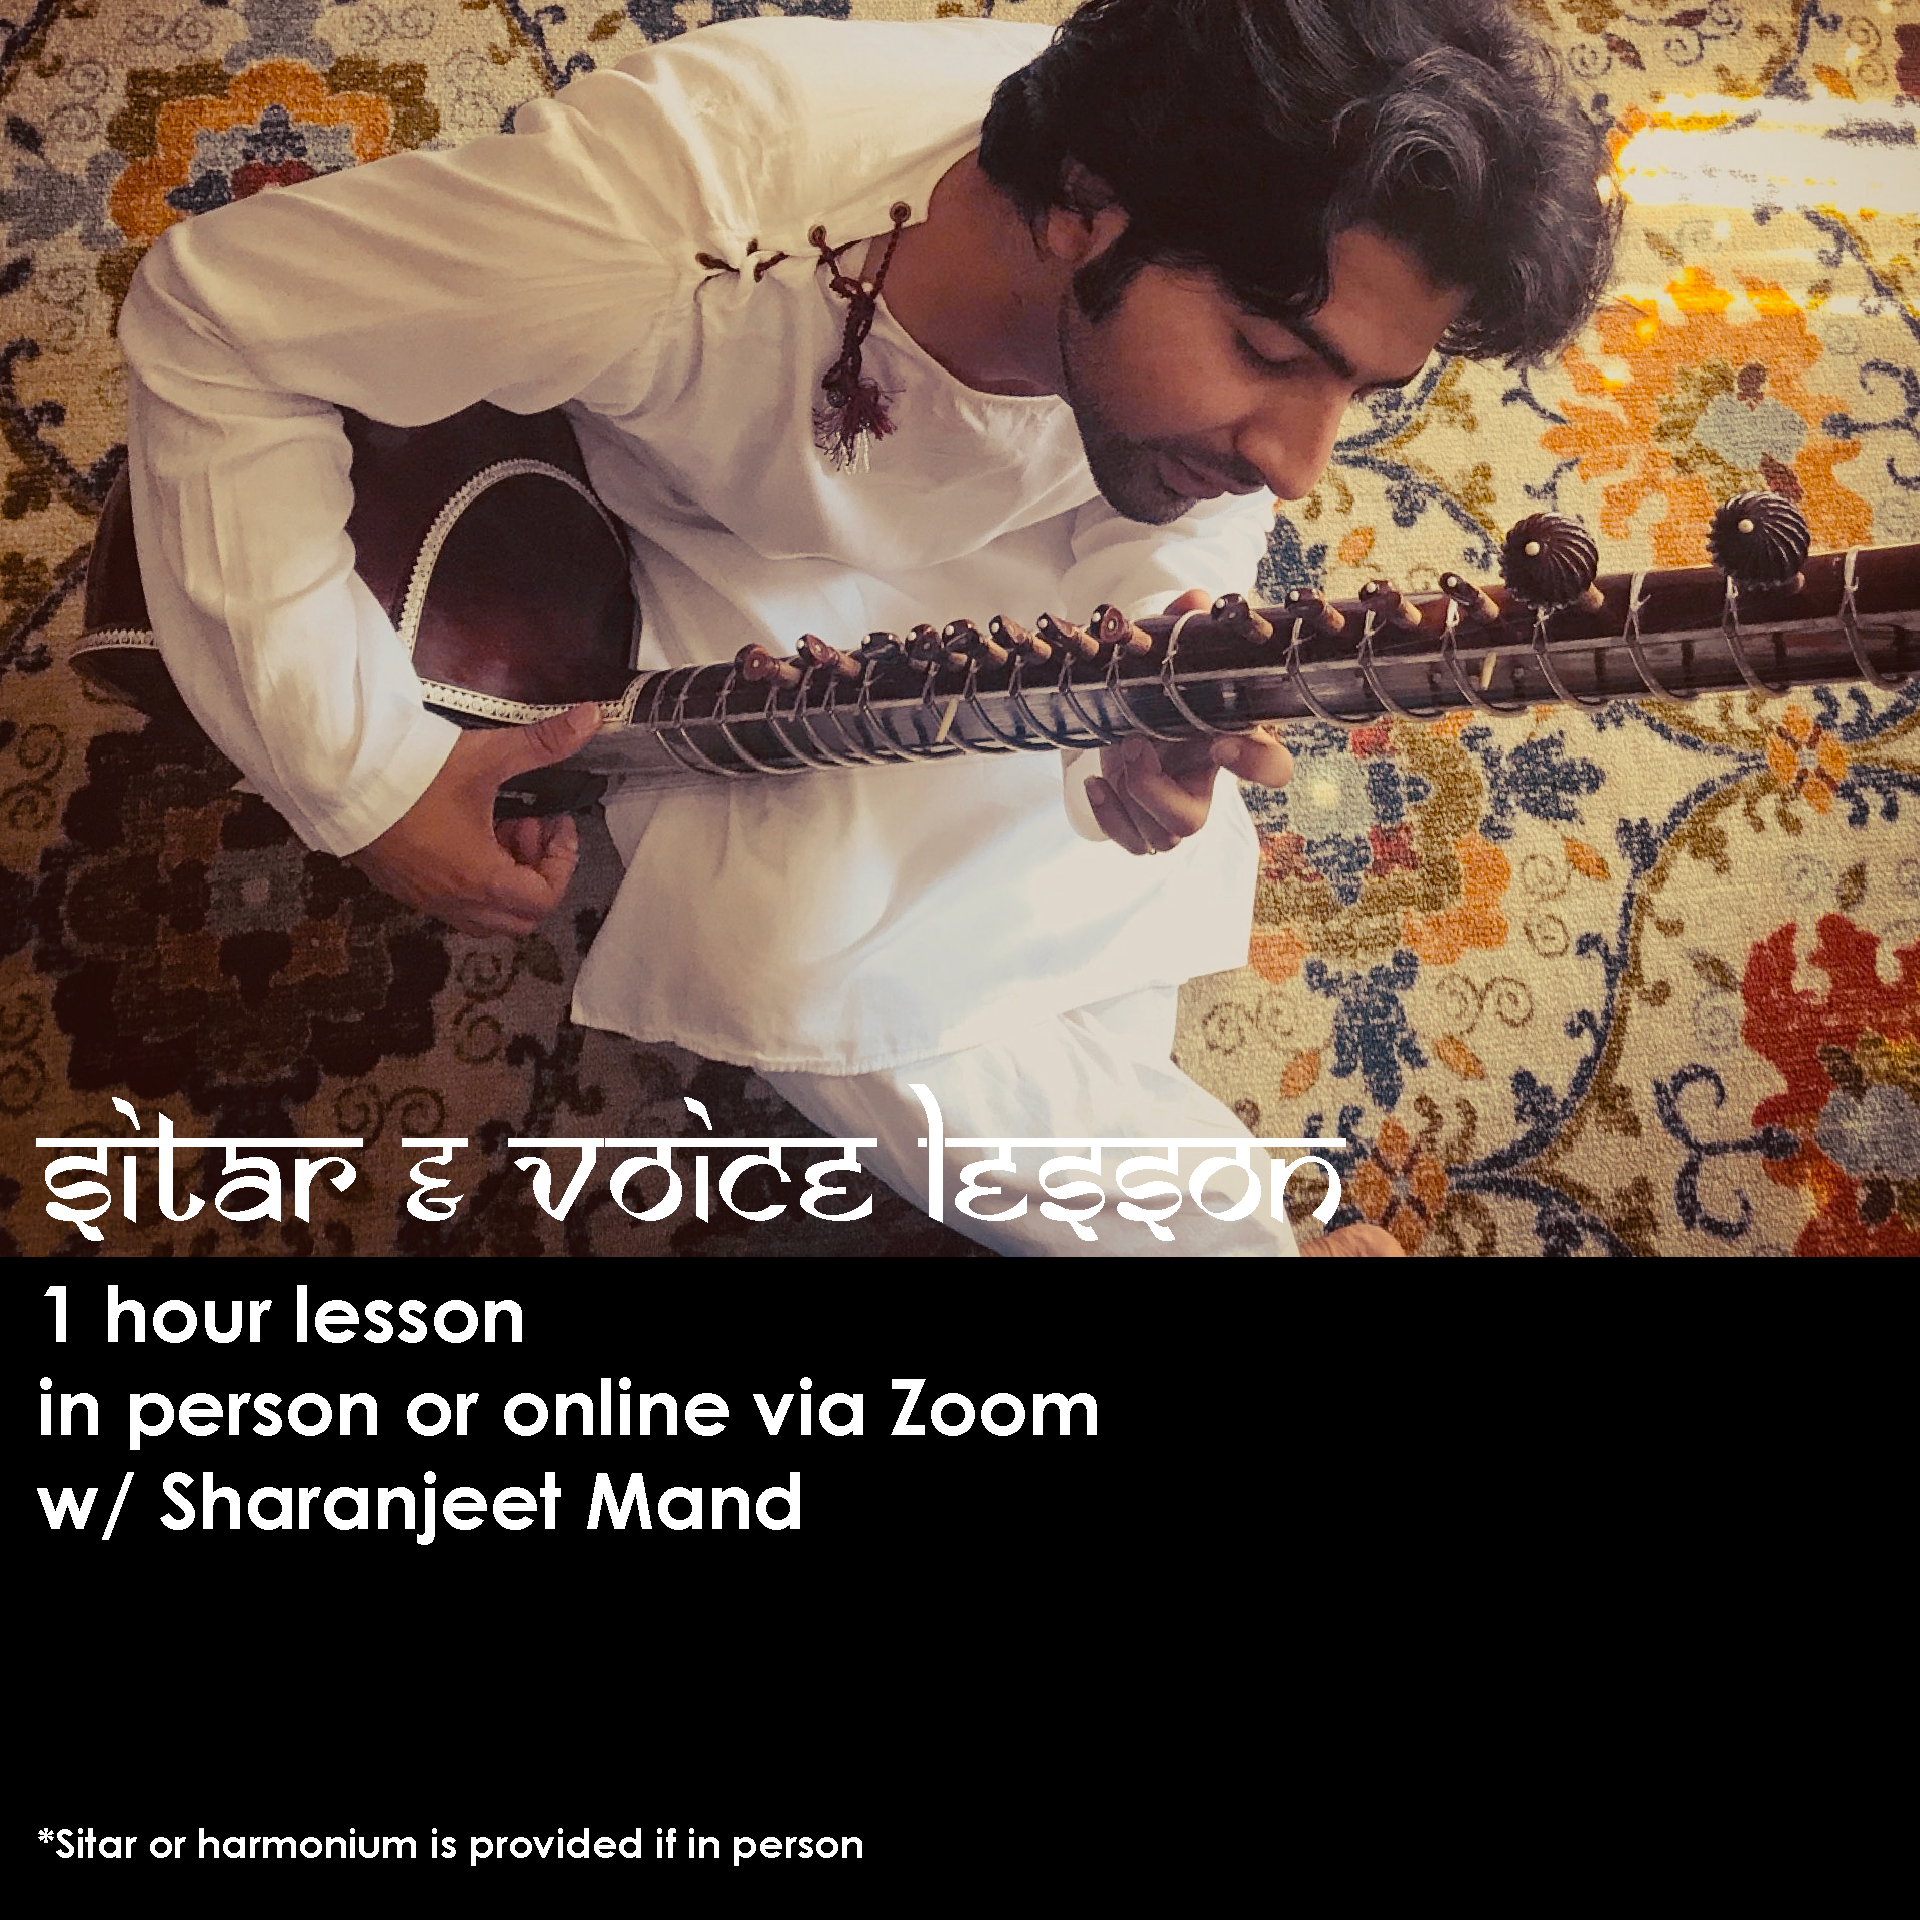 Sitar & Vocal Lessons